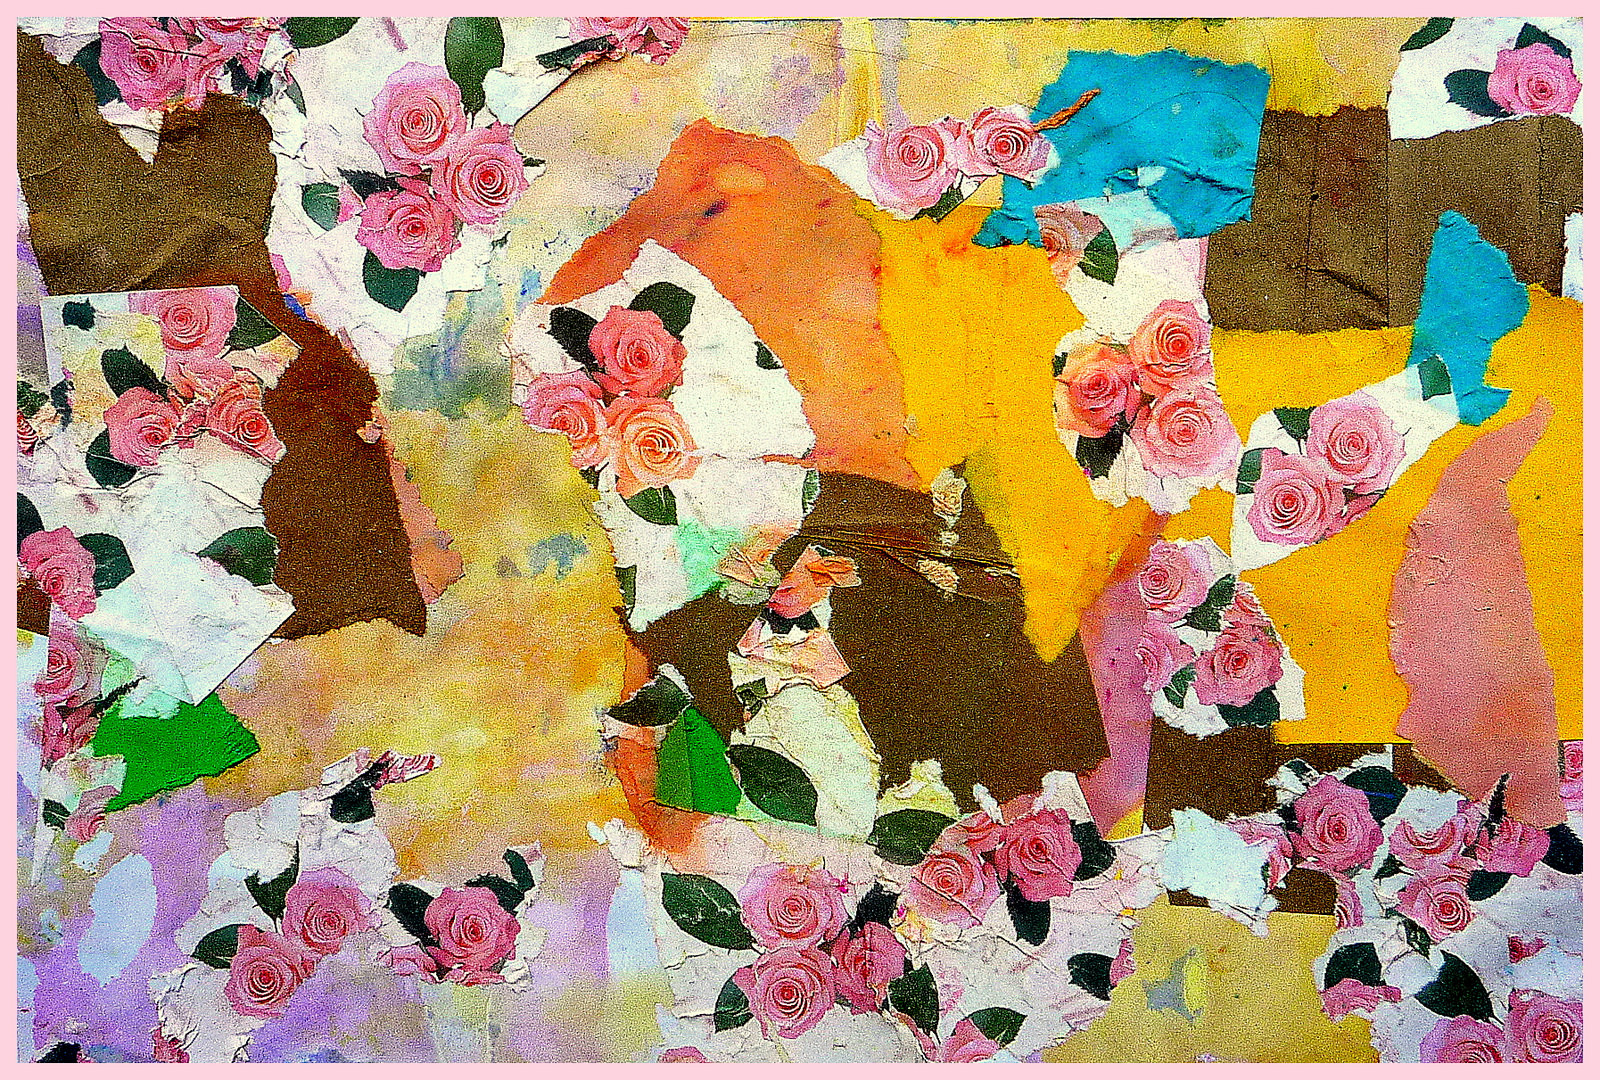 collage including roses on wallpaper, other brightly coloured paper